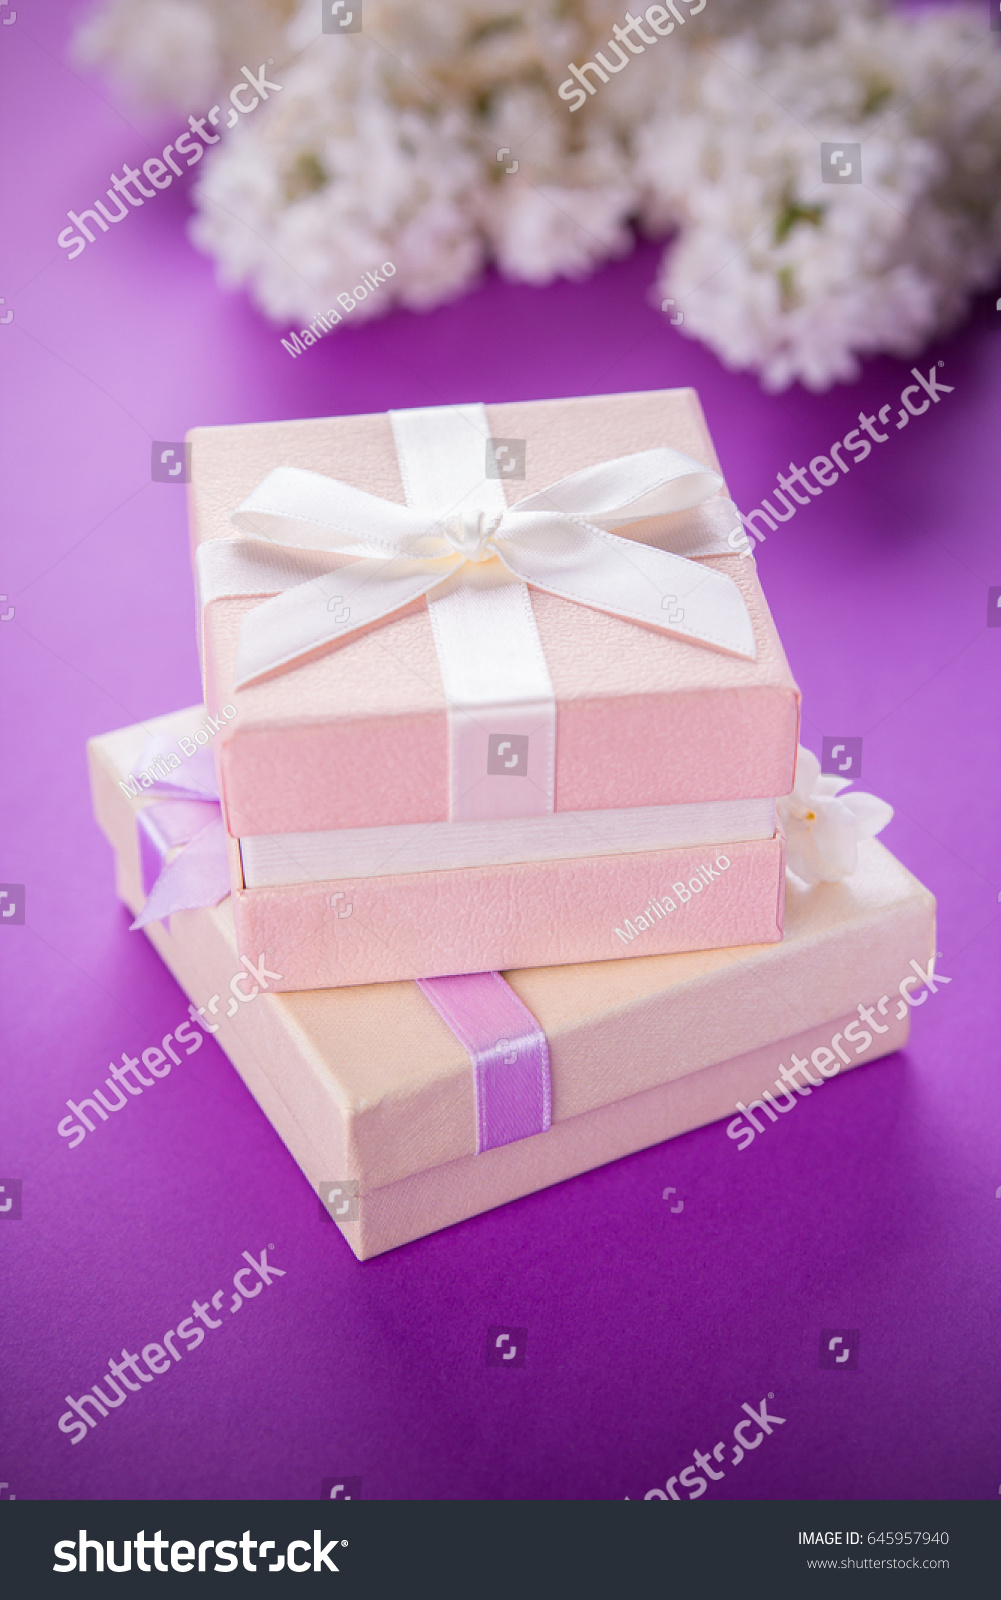 Gift Boxes Flowers On Purple Background Stock Photo (Royalty Free ...